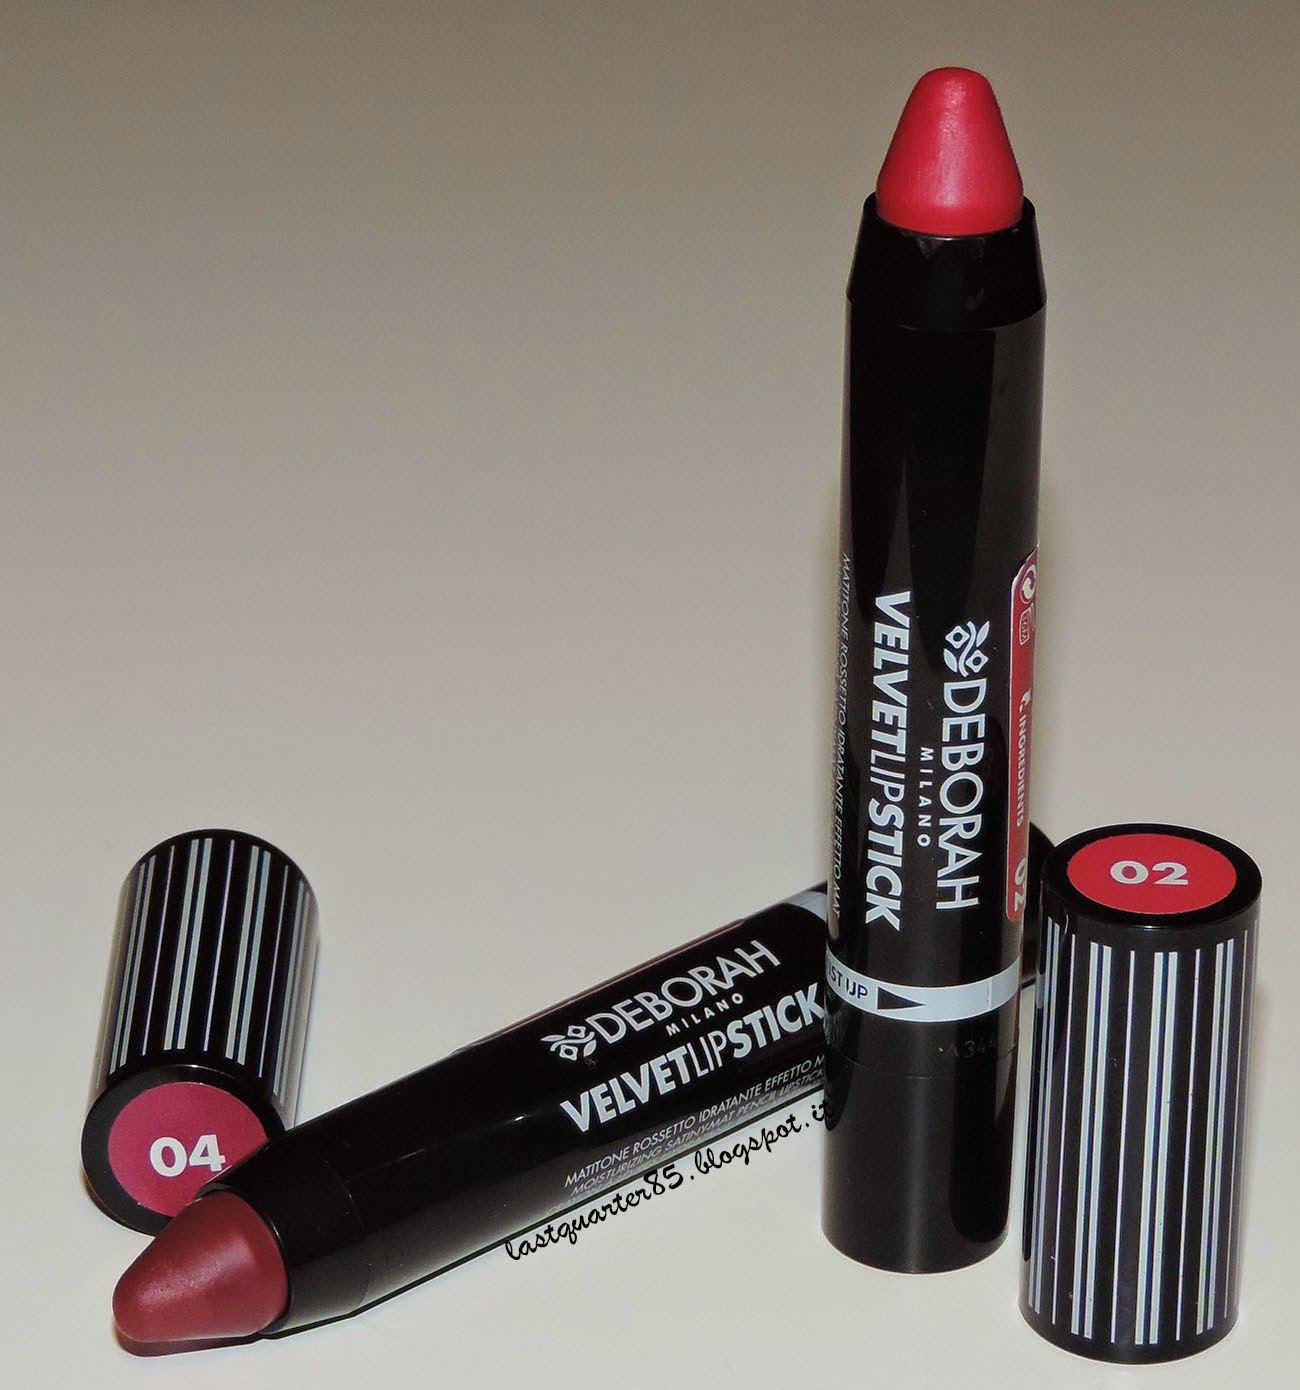 Deborah Velvet Lipstick in 02 Hot Fucsia e 04 VIntage Purple.